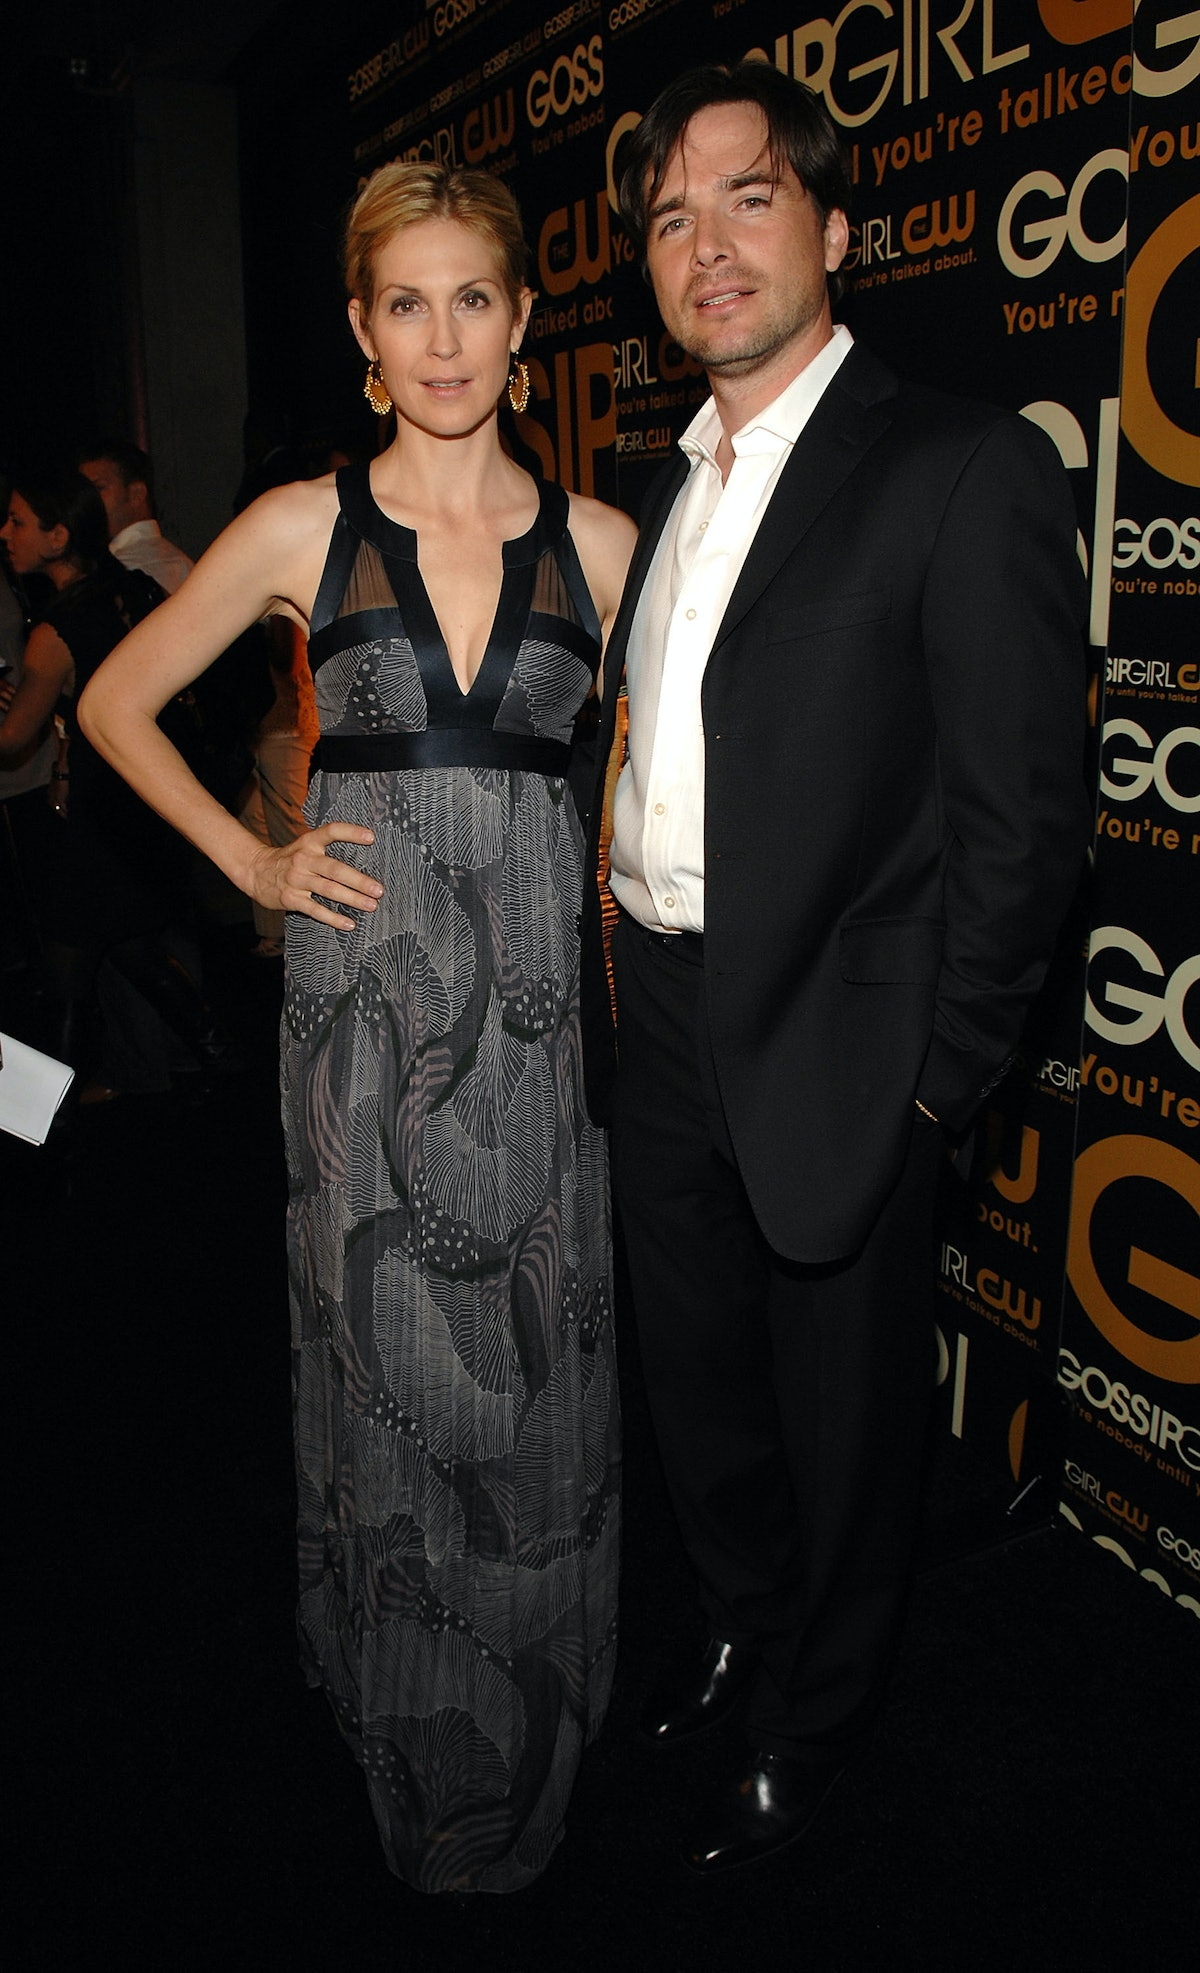 The parents from Gossip Girl.